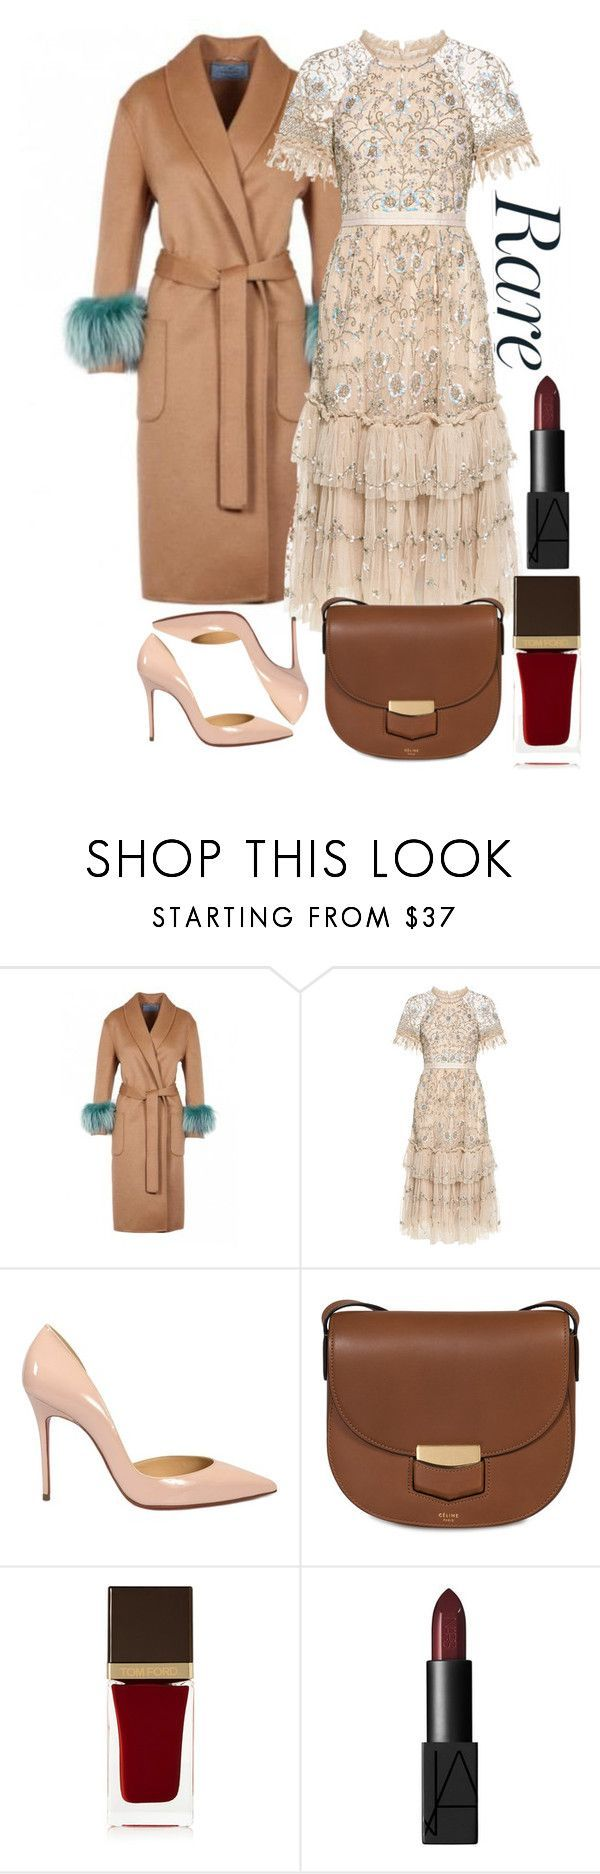 """""""Fabulously Festive"""" by shopunder ❤ liked on Polyvore featuring Prada, Needle & Thread, Christian Louboutin, CÉLINE and Tom Ford #churchoutfits"""